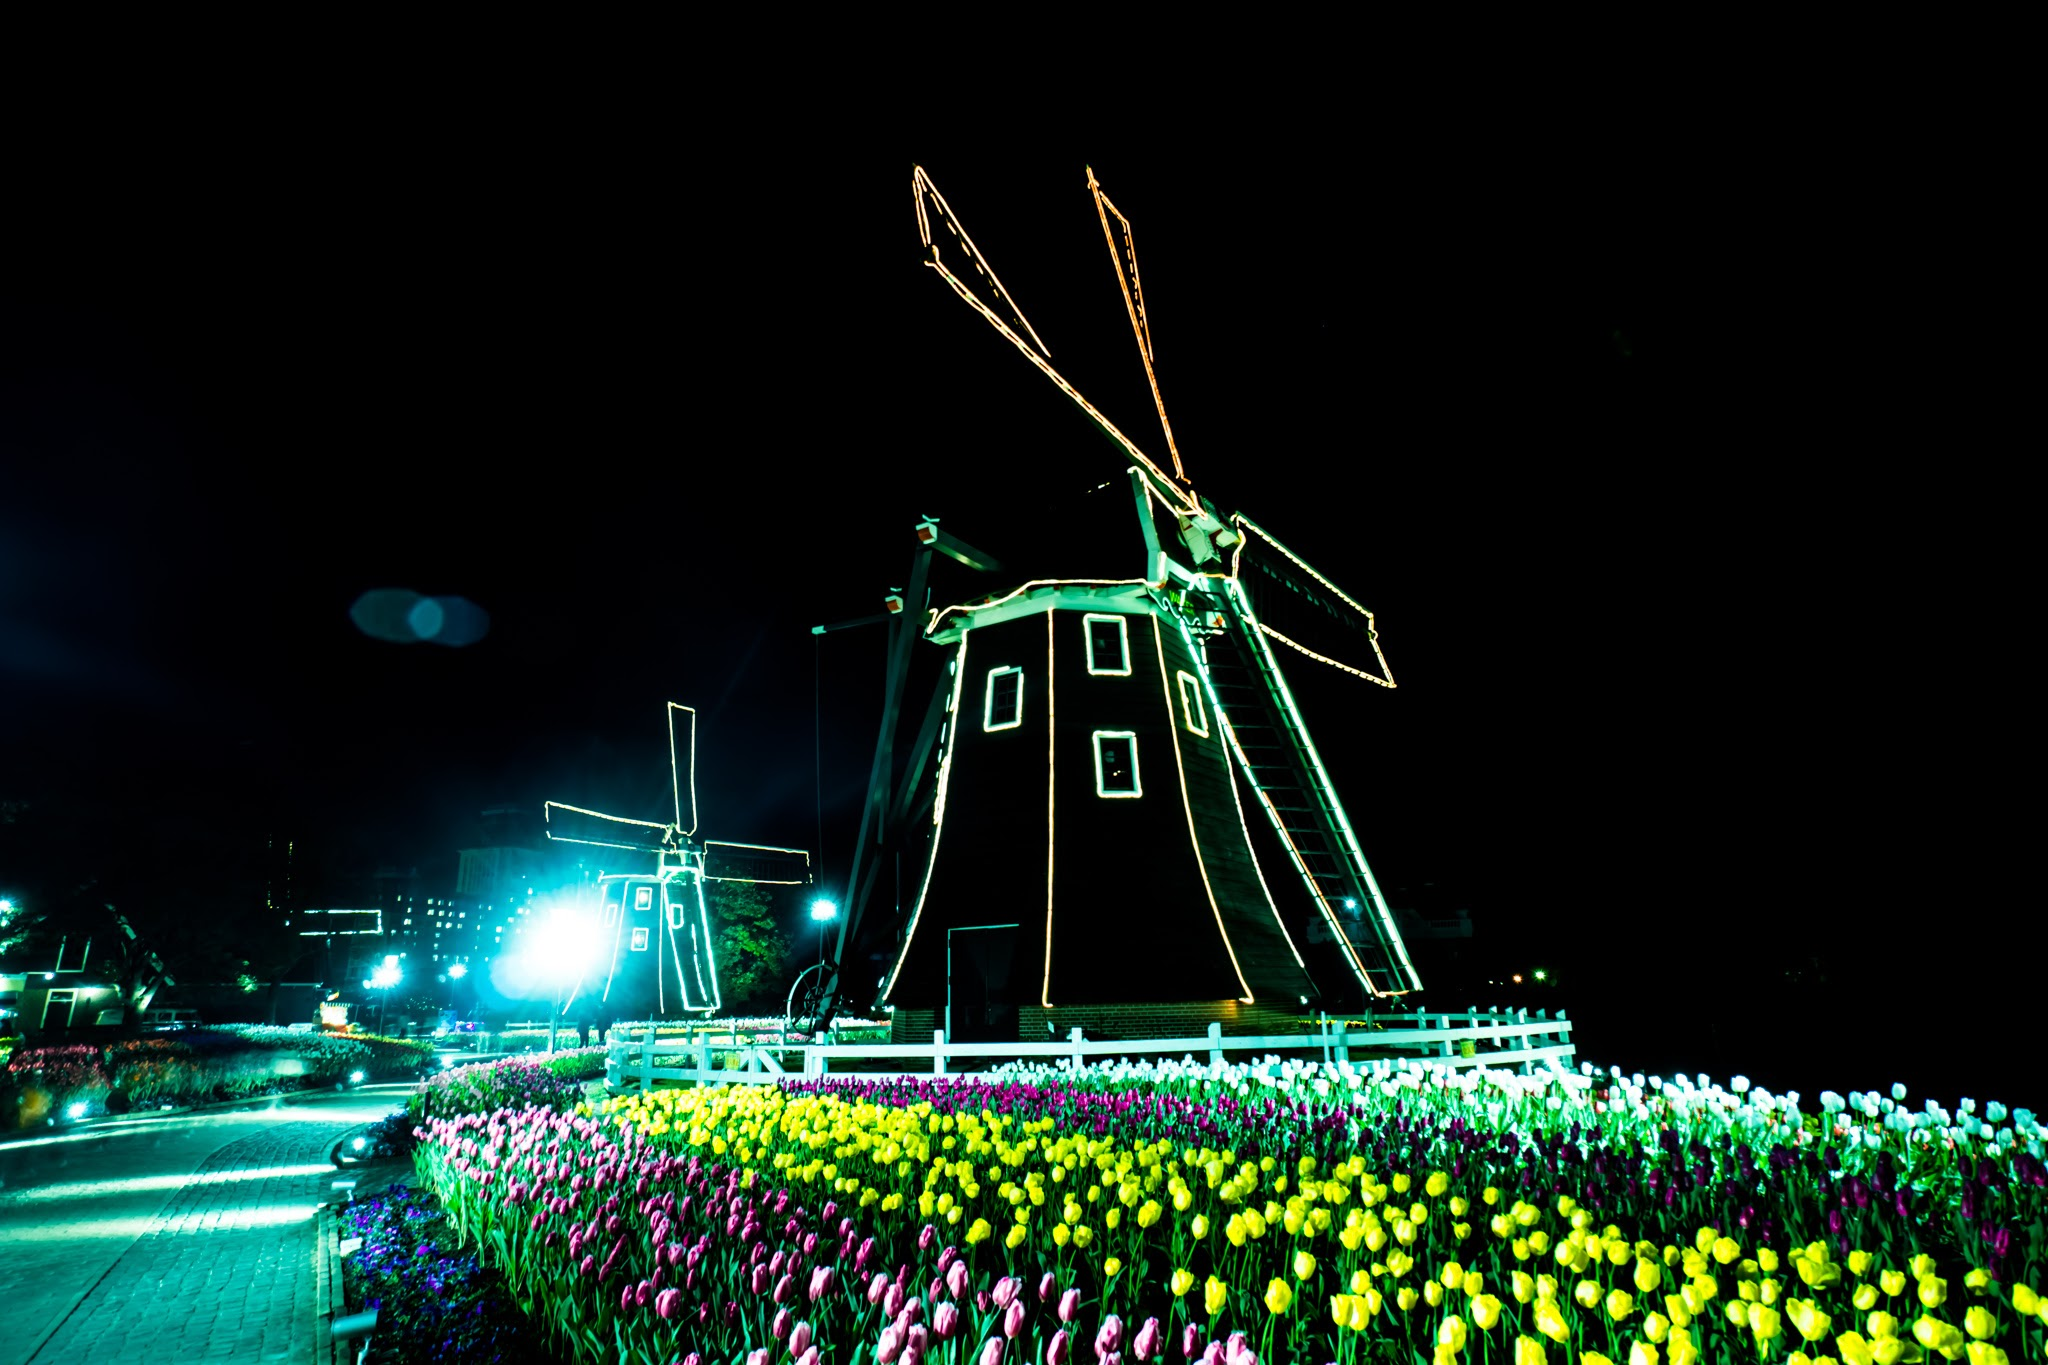 Huis Ten Bosch illumination Kingdom of light Tulip garden1